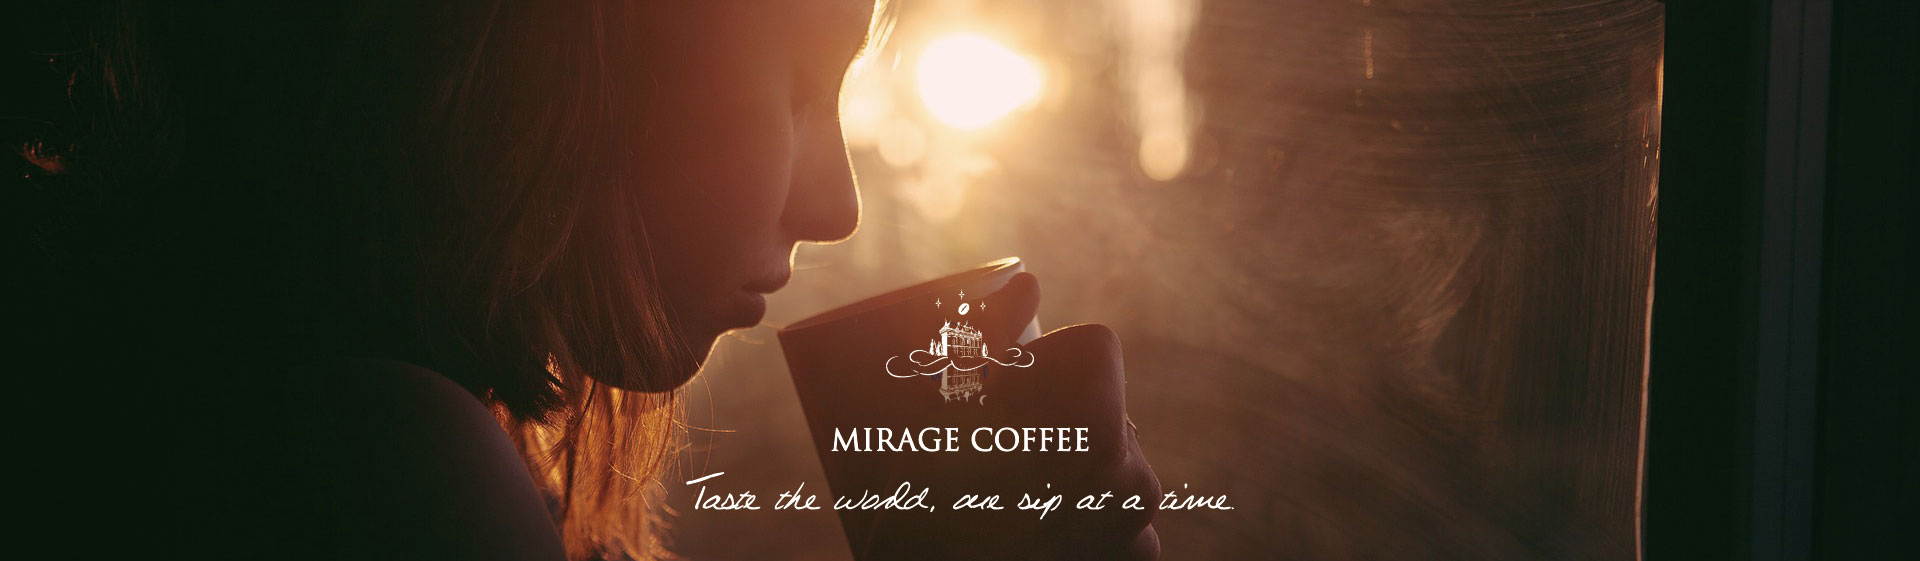 miragecoffee